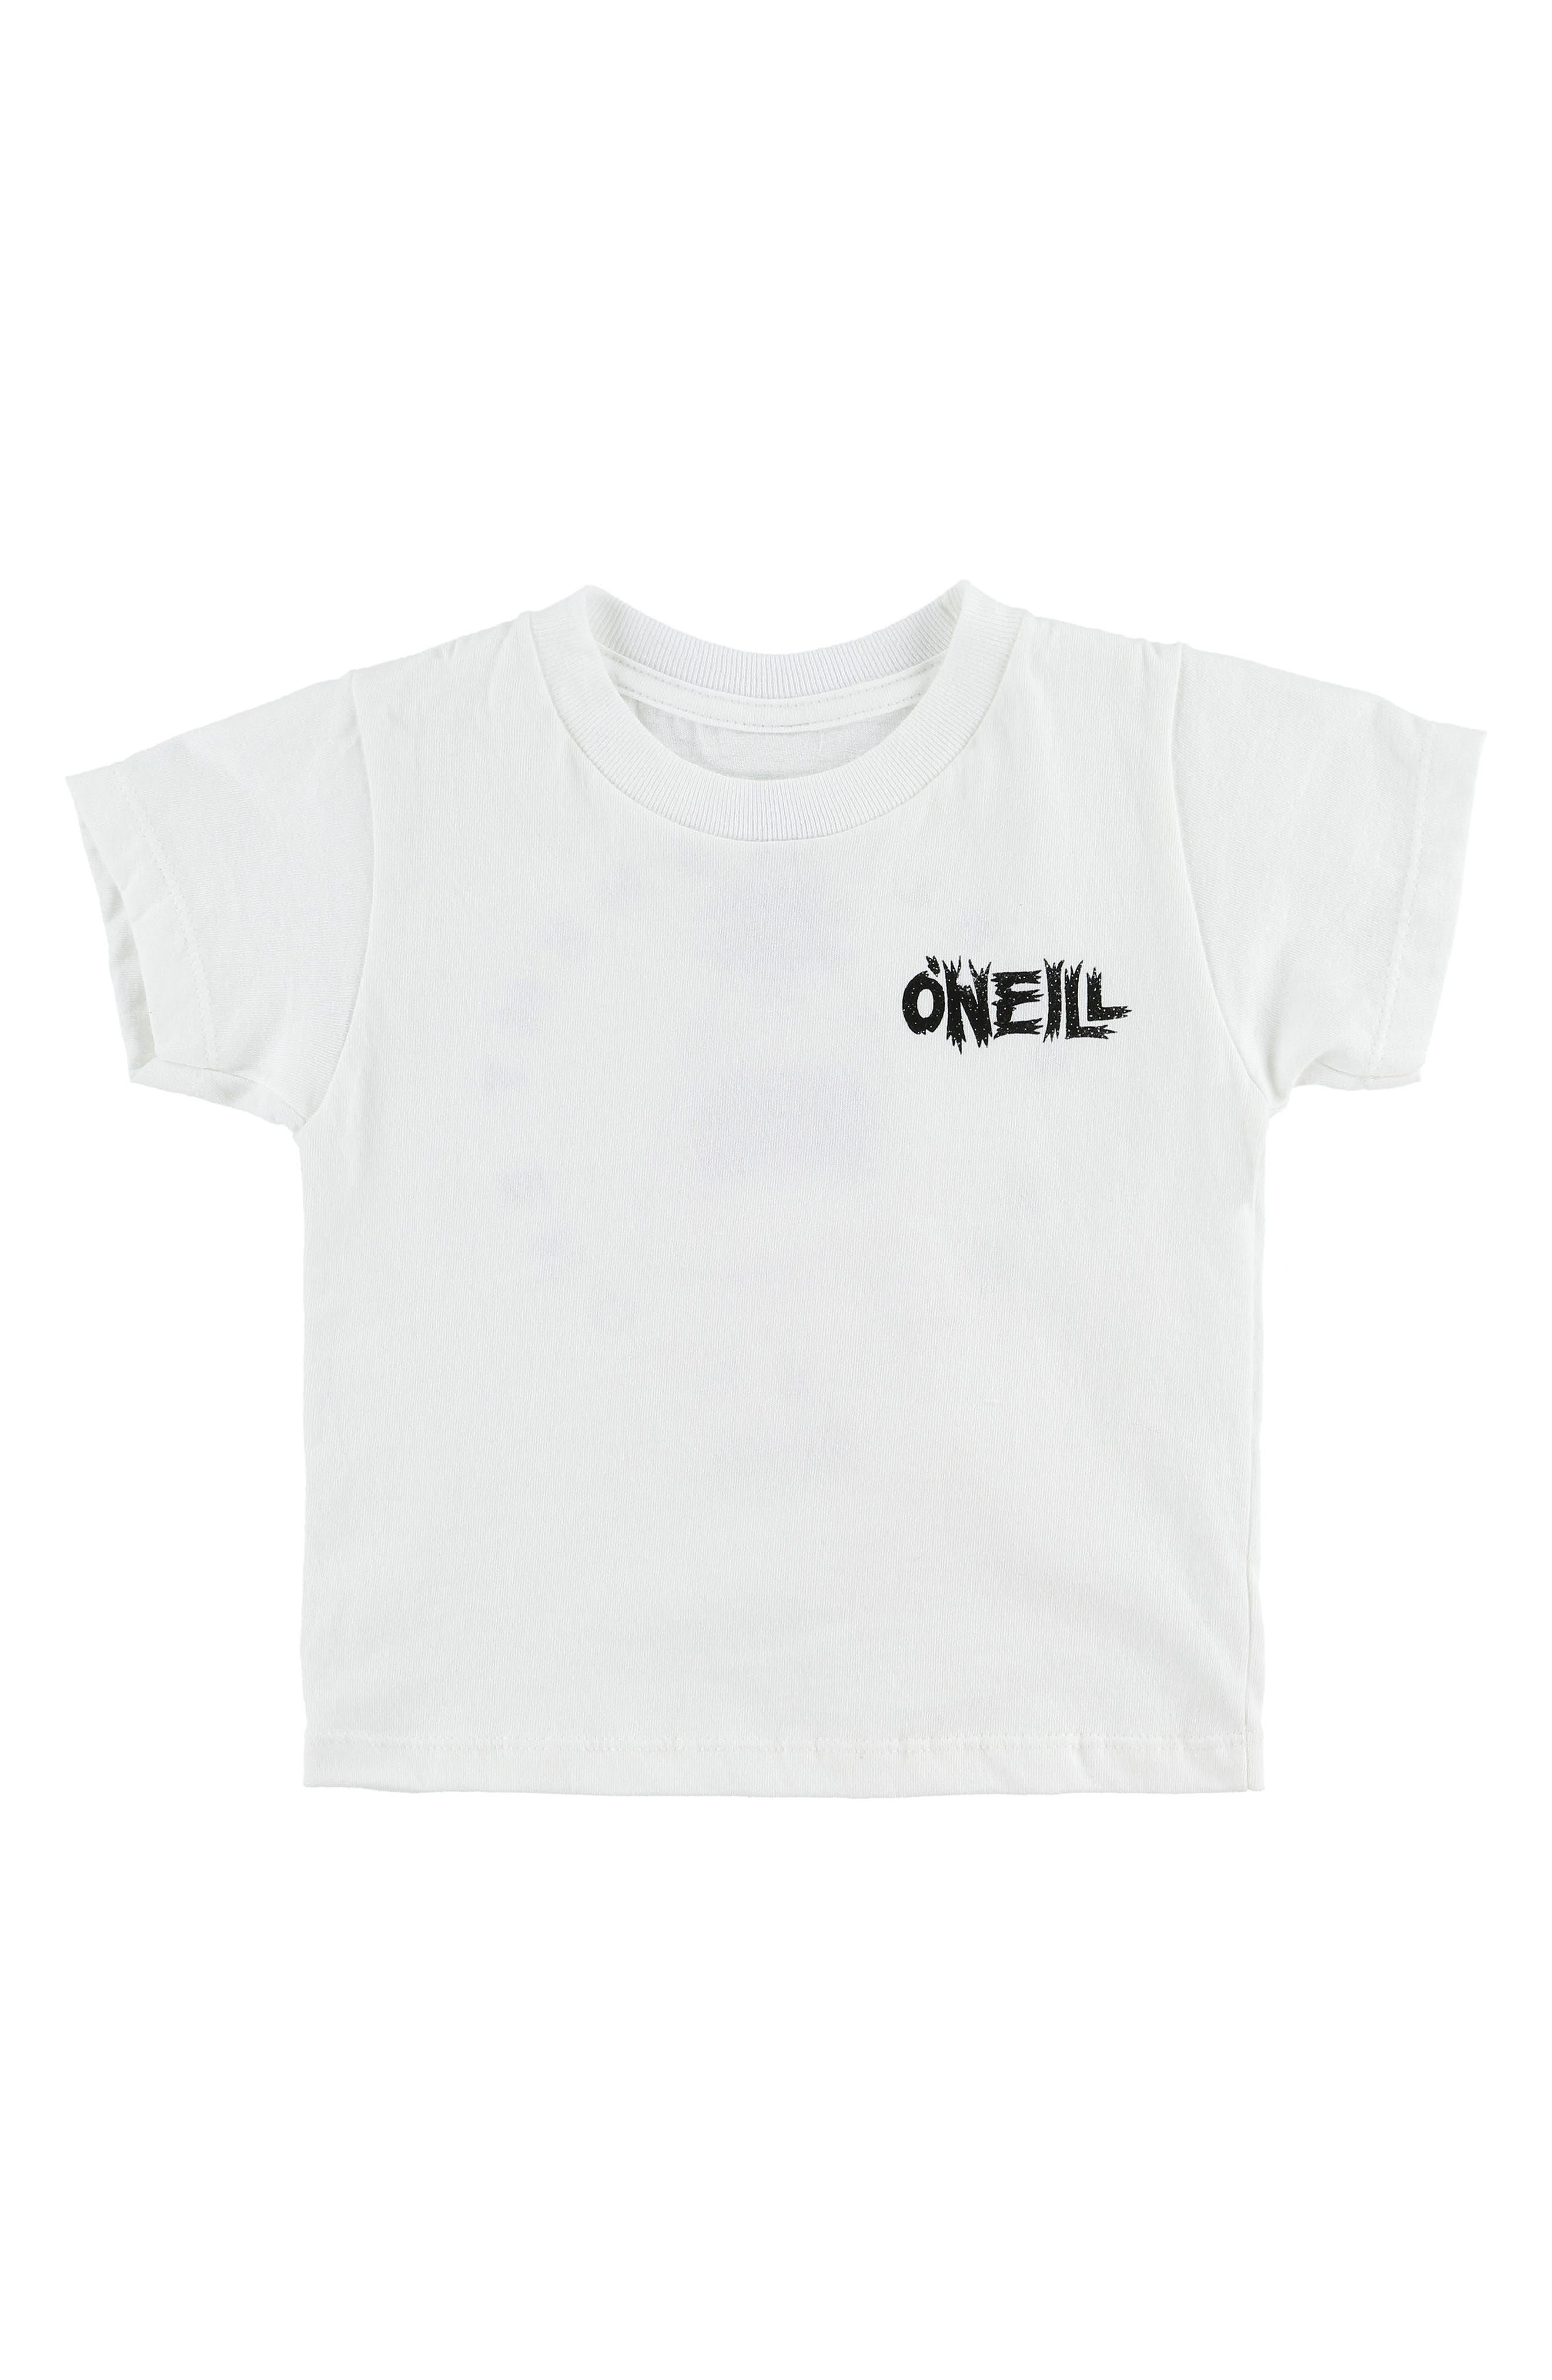 Main Image - O'Neill Enemy Graphic T-Shirt (Toddler Boys)